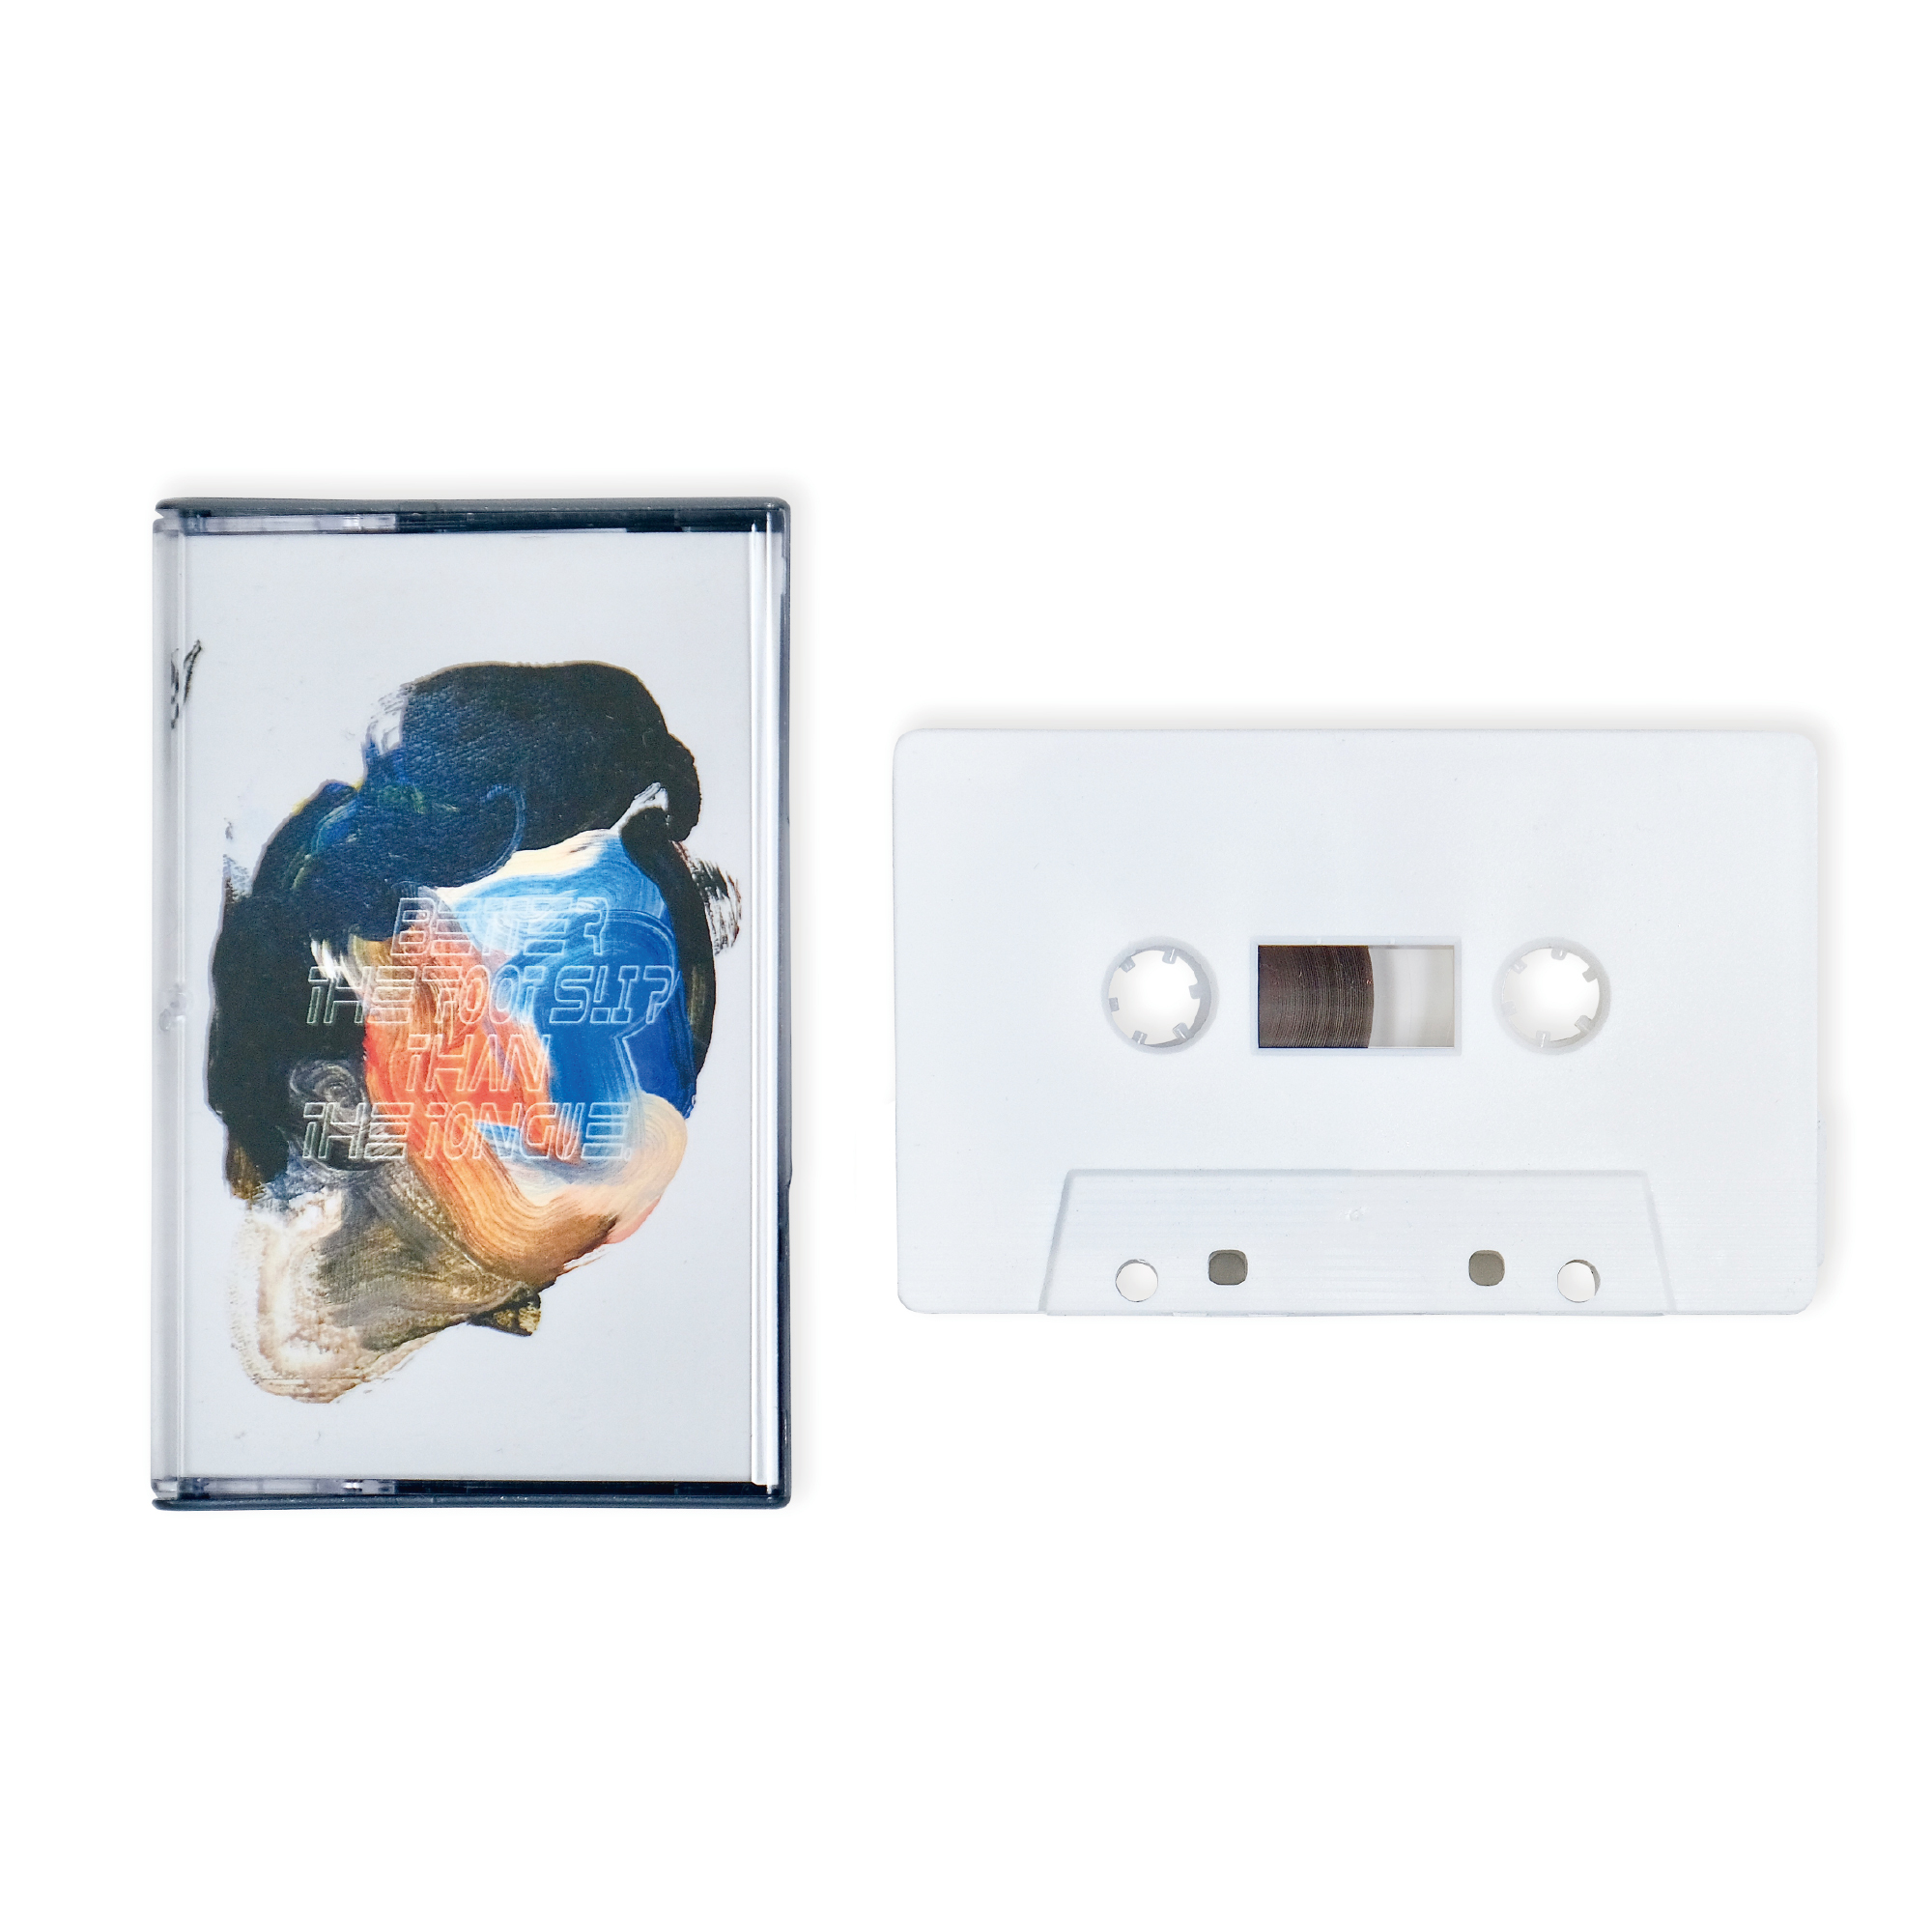 """AI.U """"BETTER THE FOOT STEP THAN THE TONGUE"""" / ONLY 50 LIMITED Cassette Tape"""